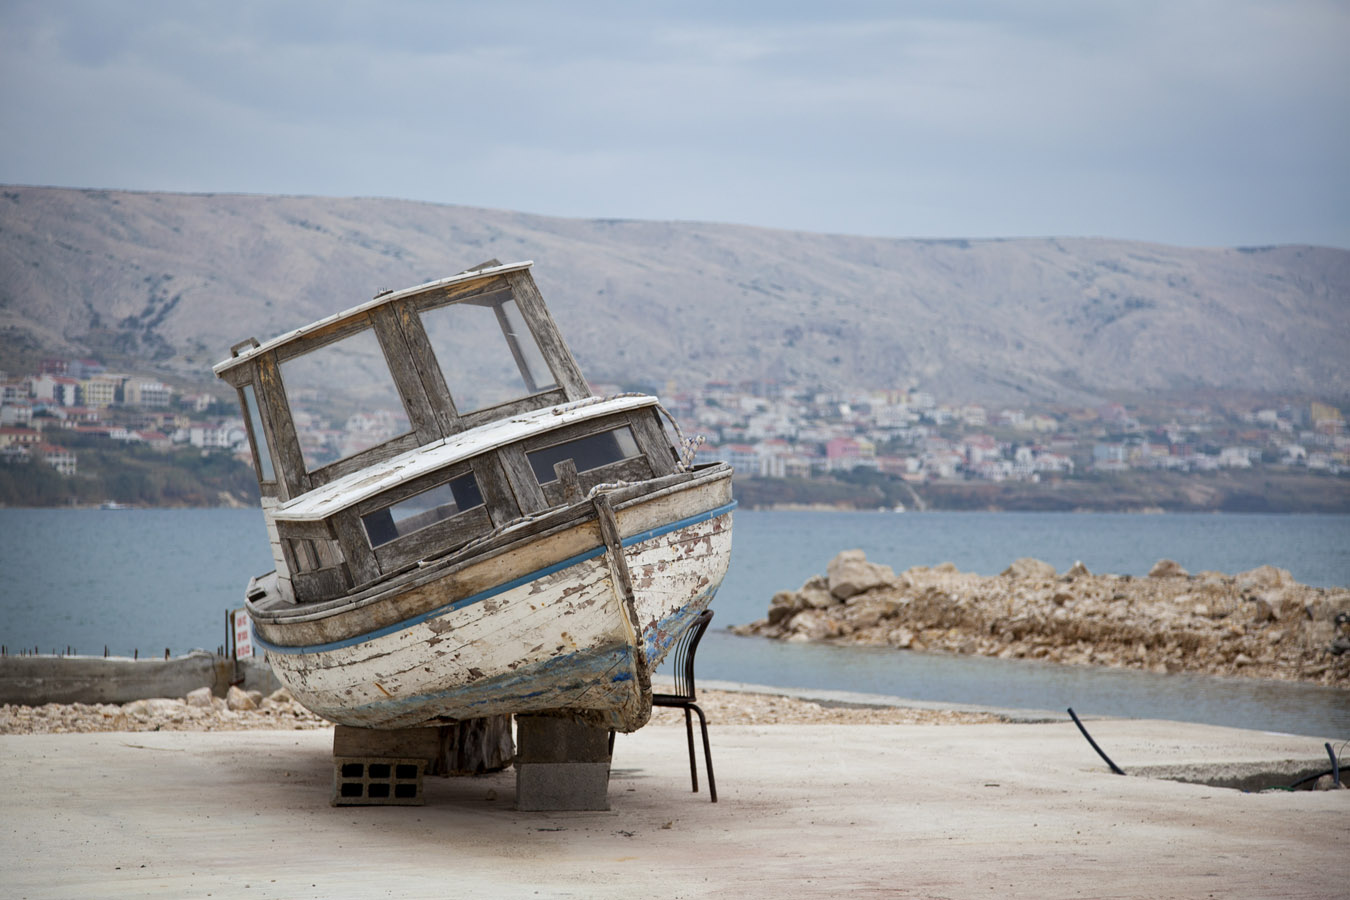 In disrepair, Pag, Croatia